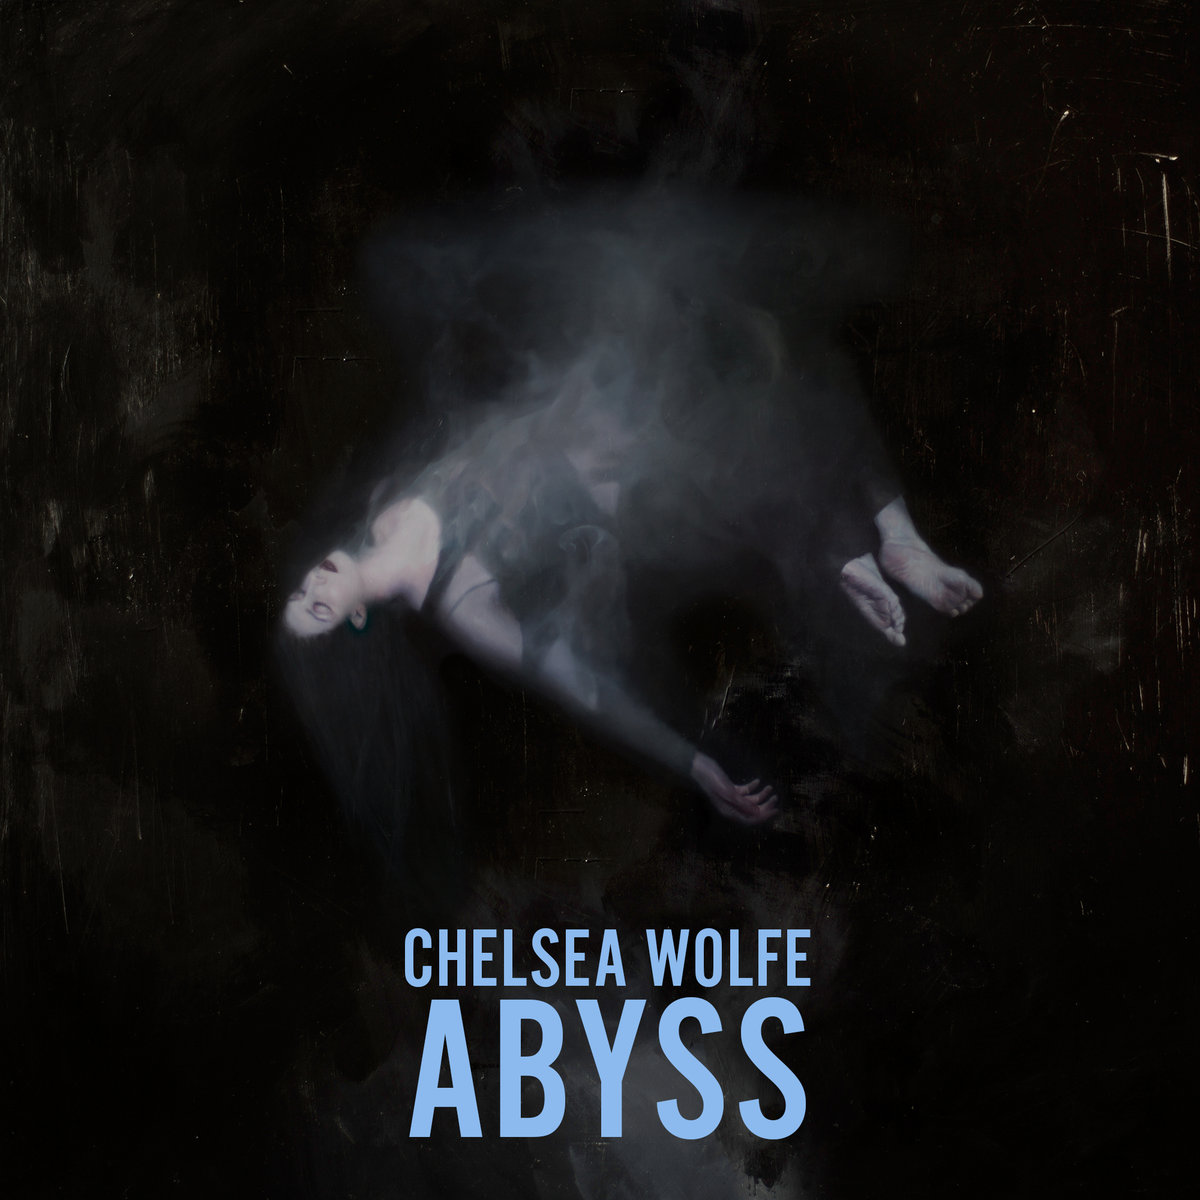 chelsea wolfe abyss album cover